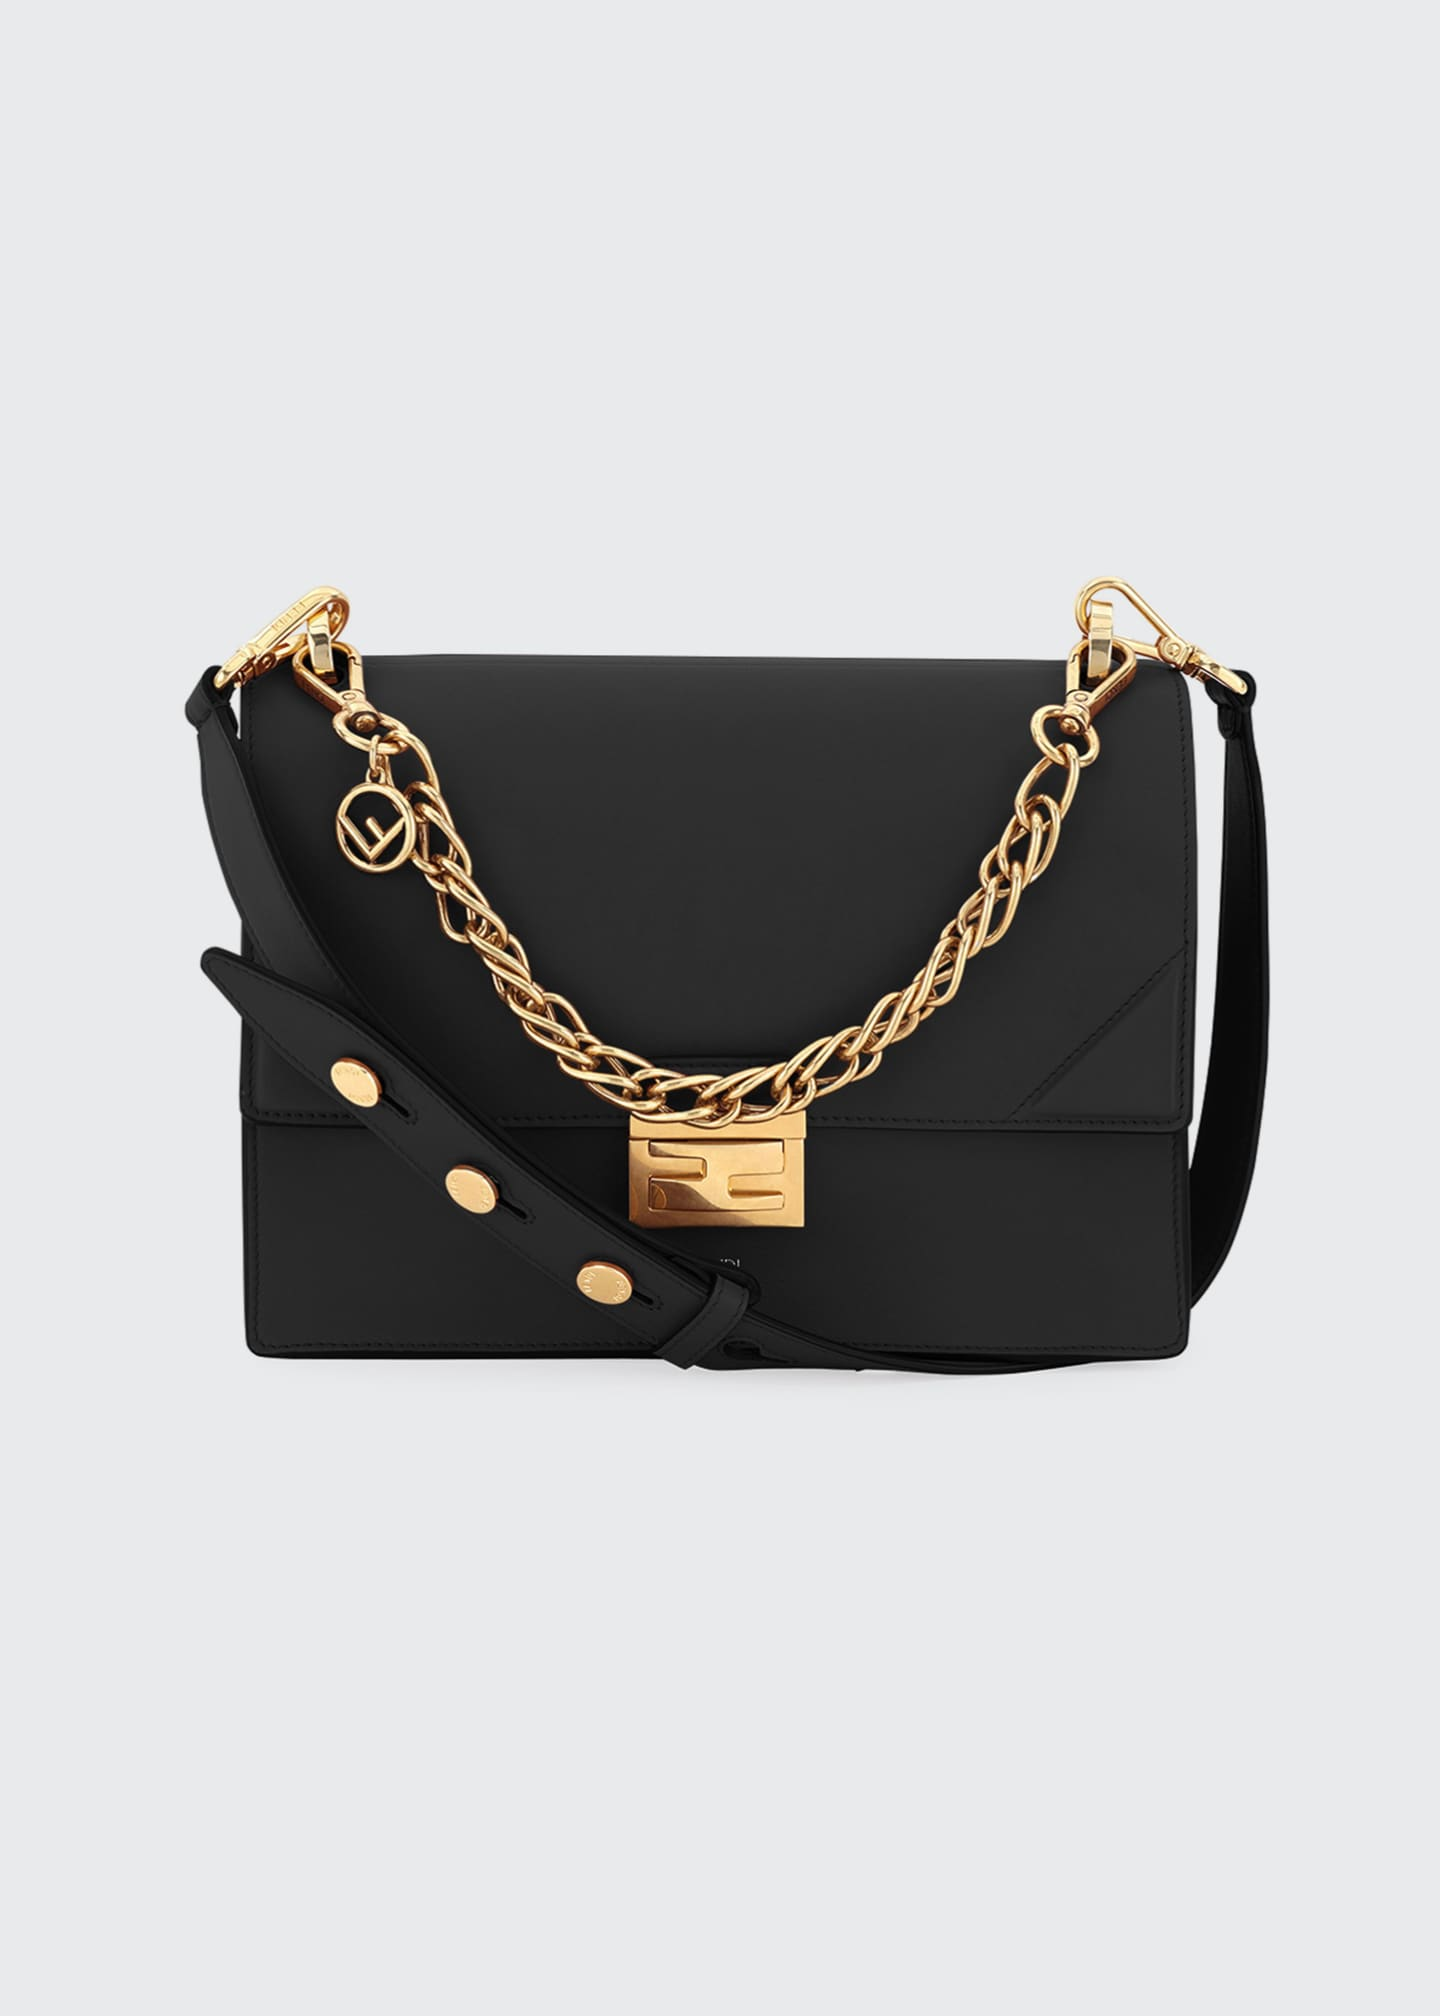 Fendi Kan Shiny Leather Shoulder Bag